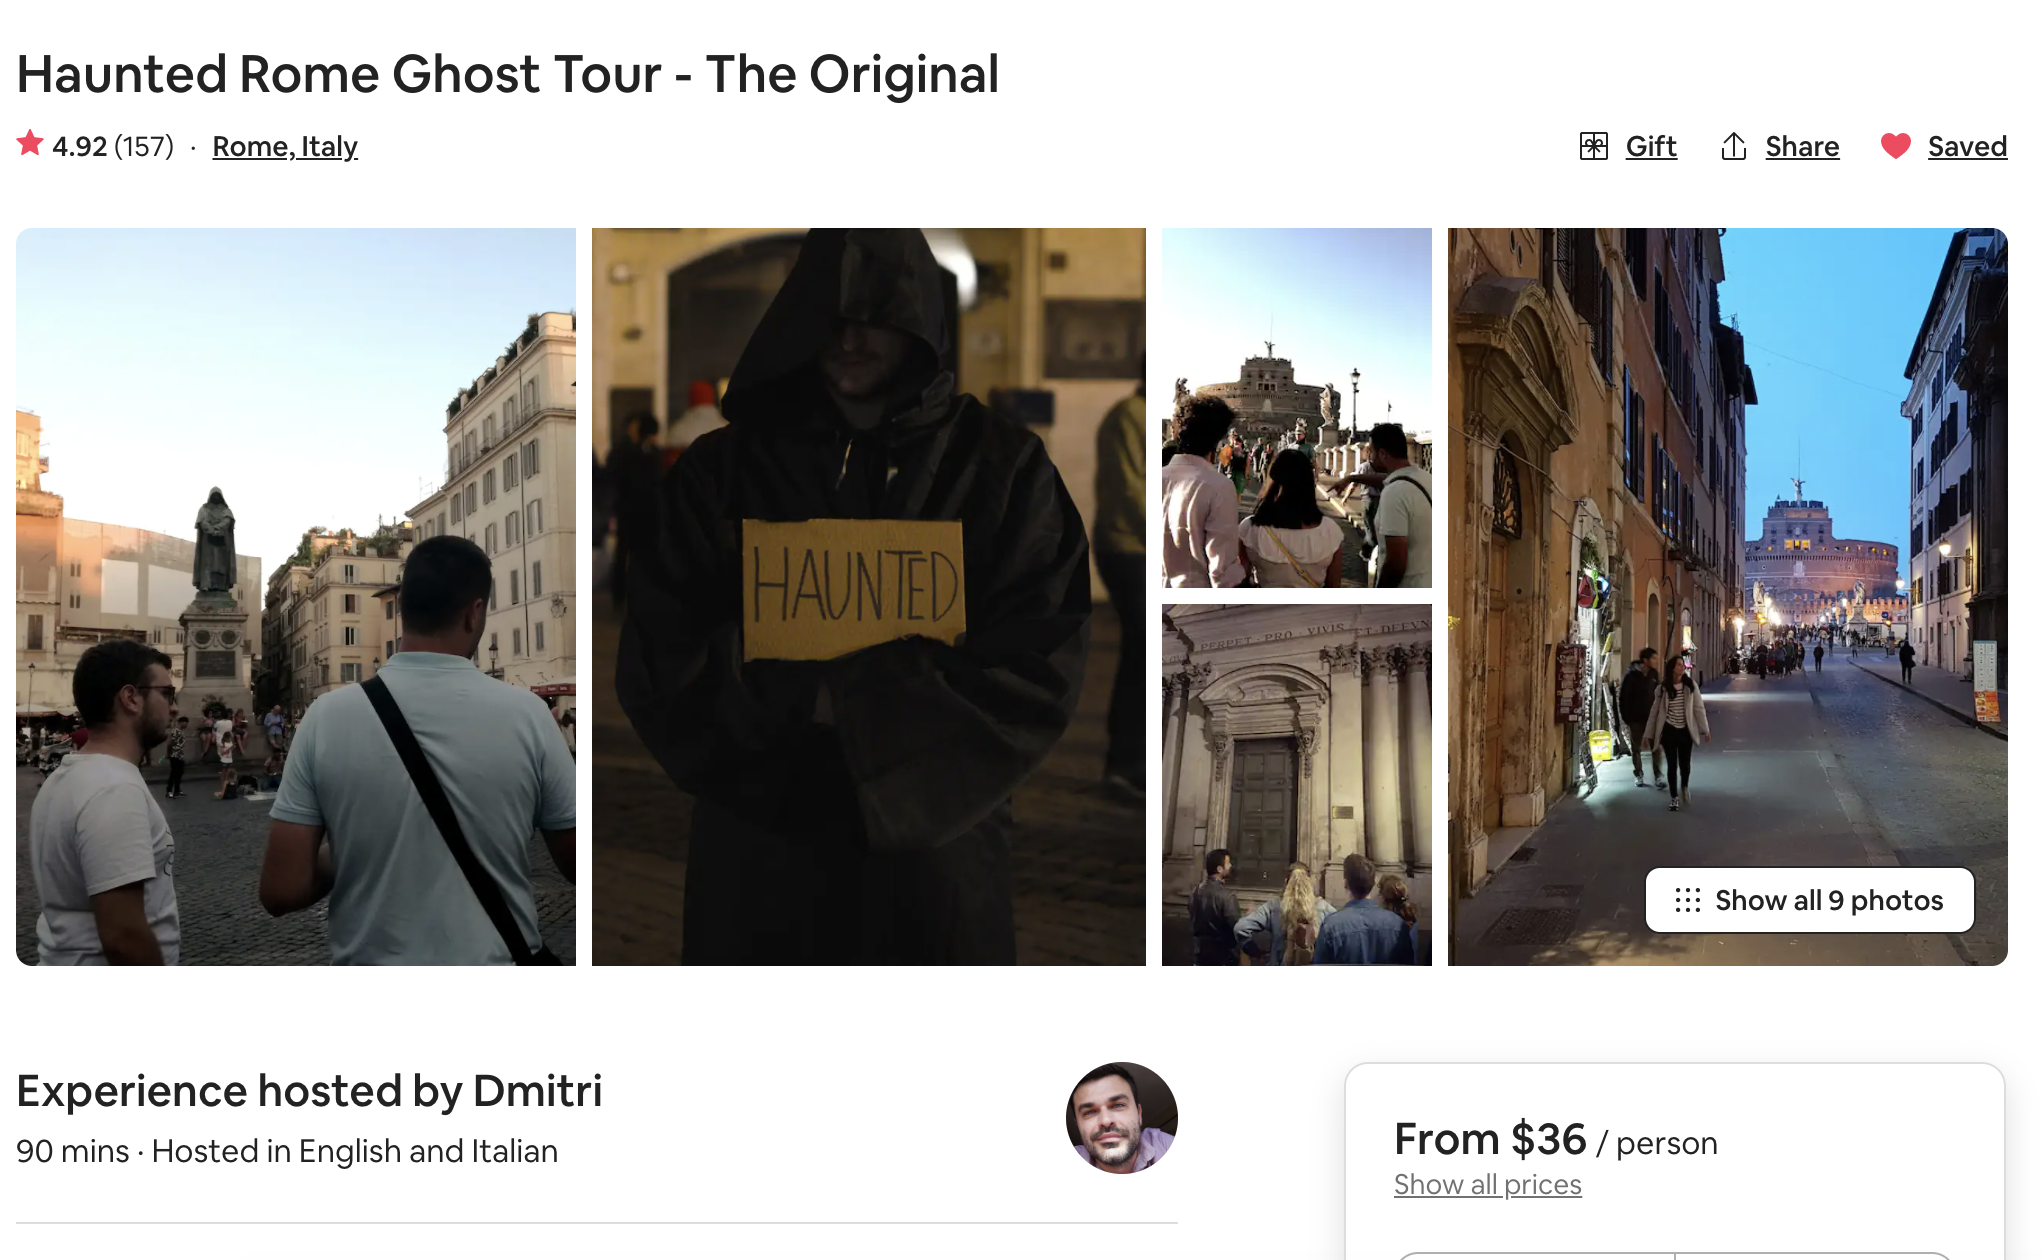 screen shot of a ghost tour in Rome